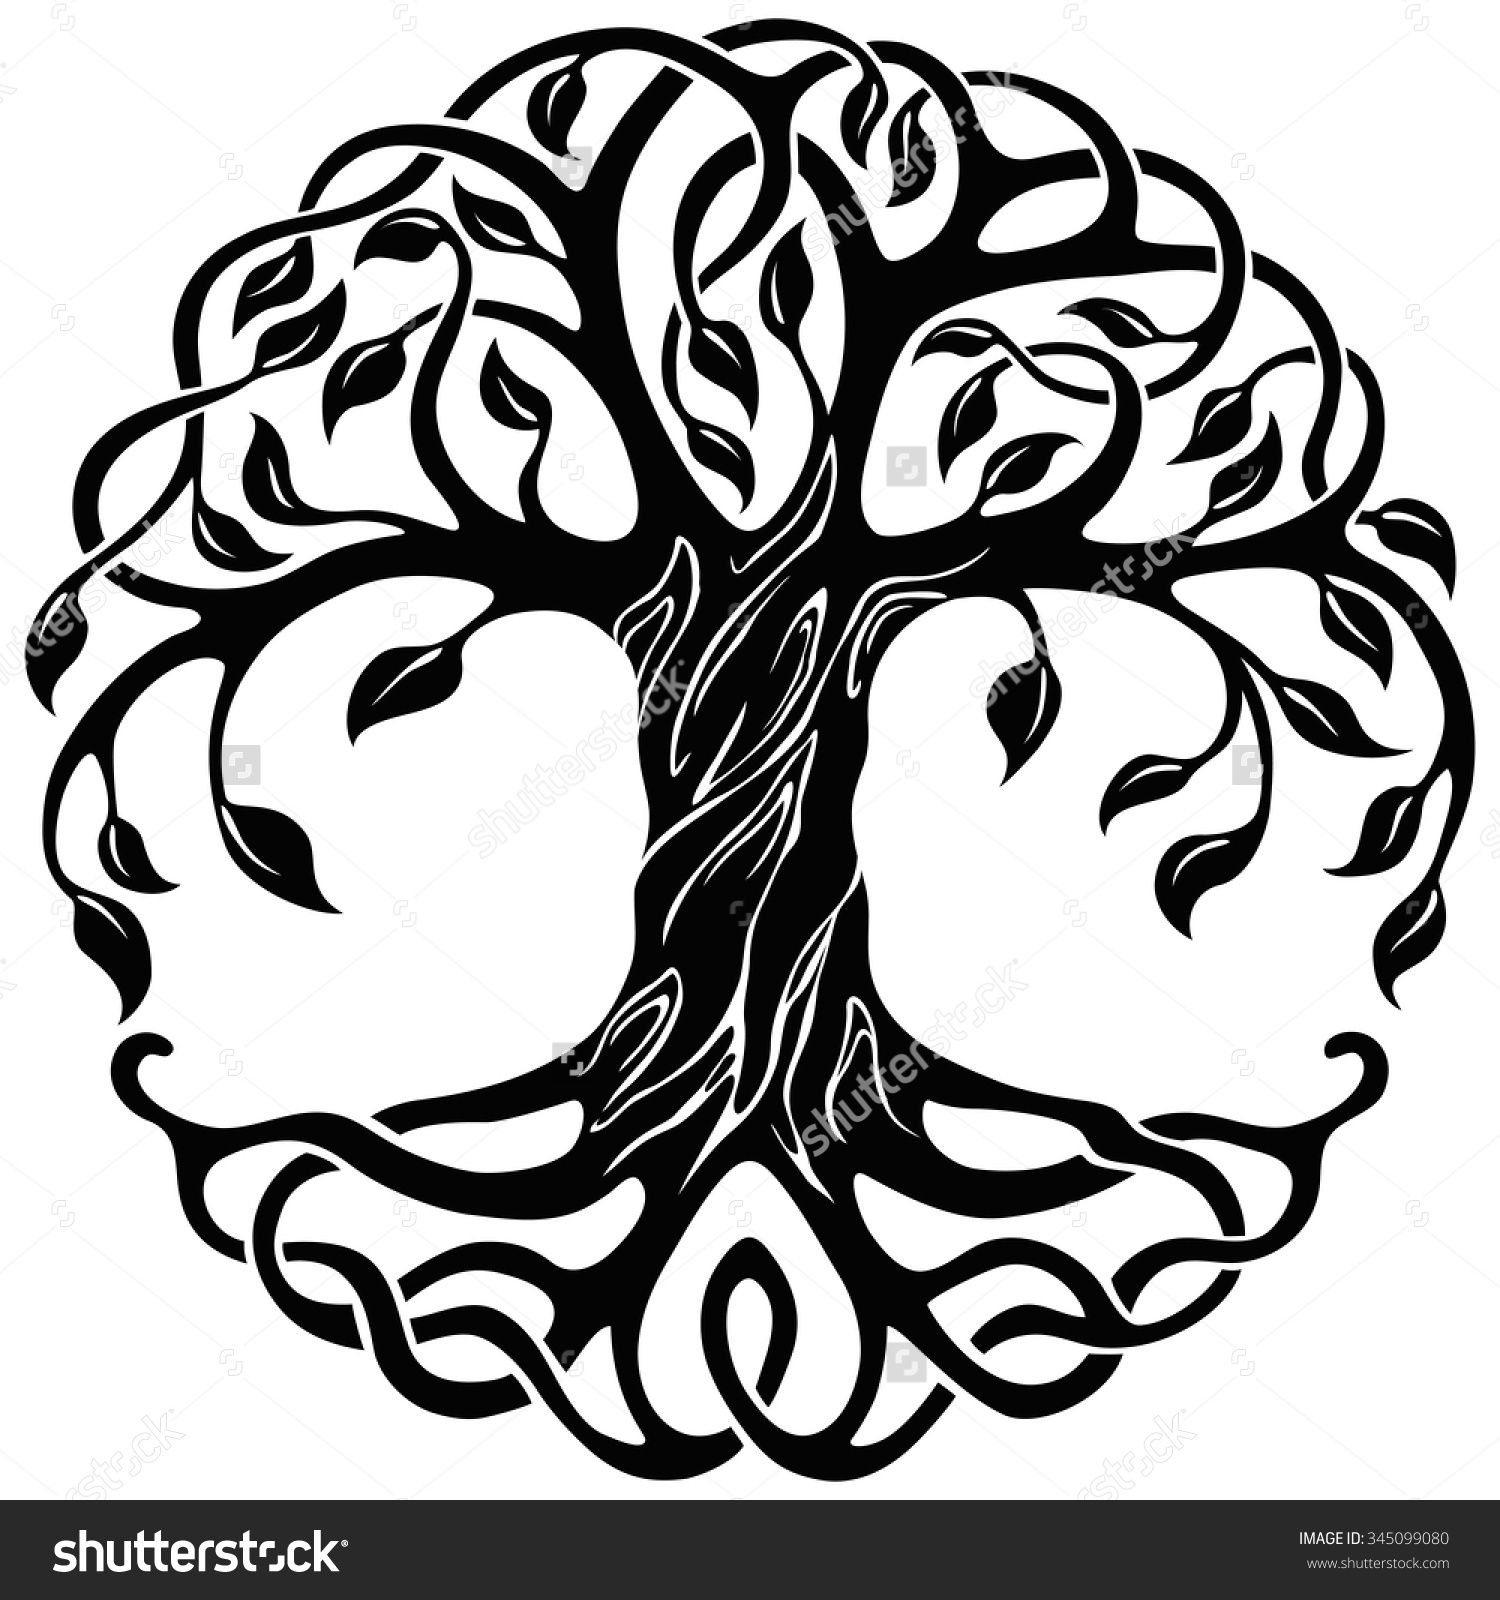 Celtic tree of life stock photos images pictures celtic tree of life stock photos images pictures shutterstock biocorpaavc Choice Image